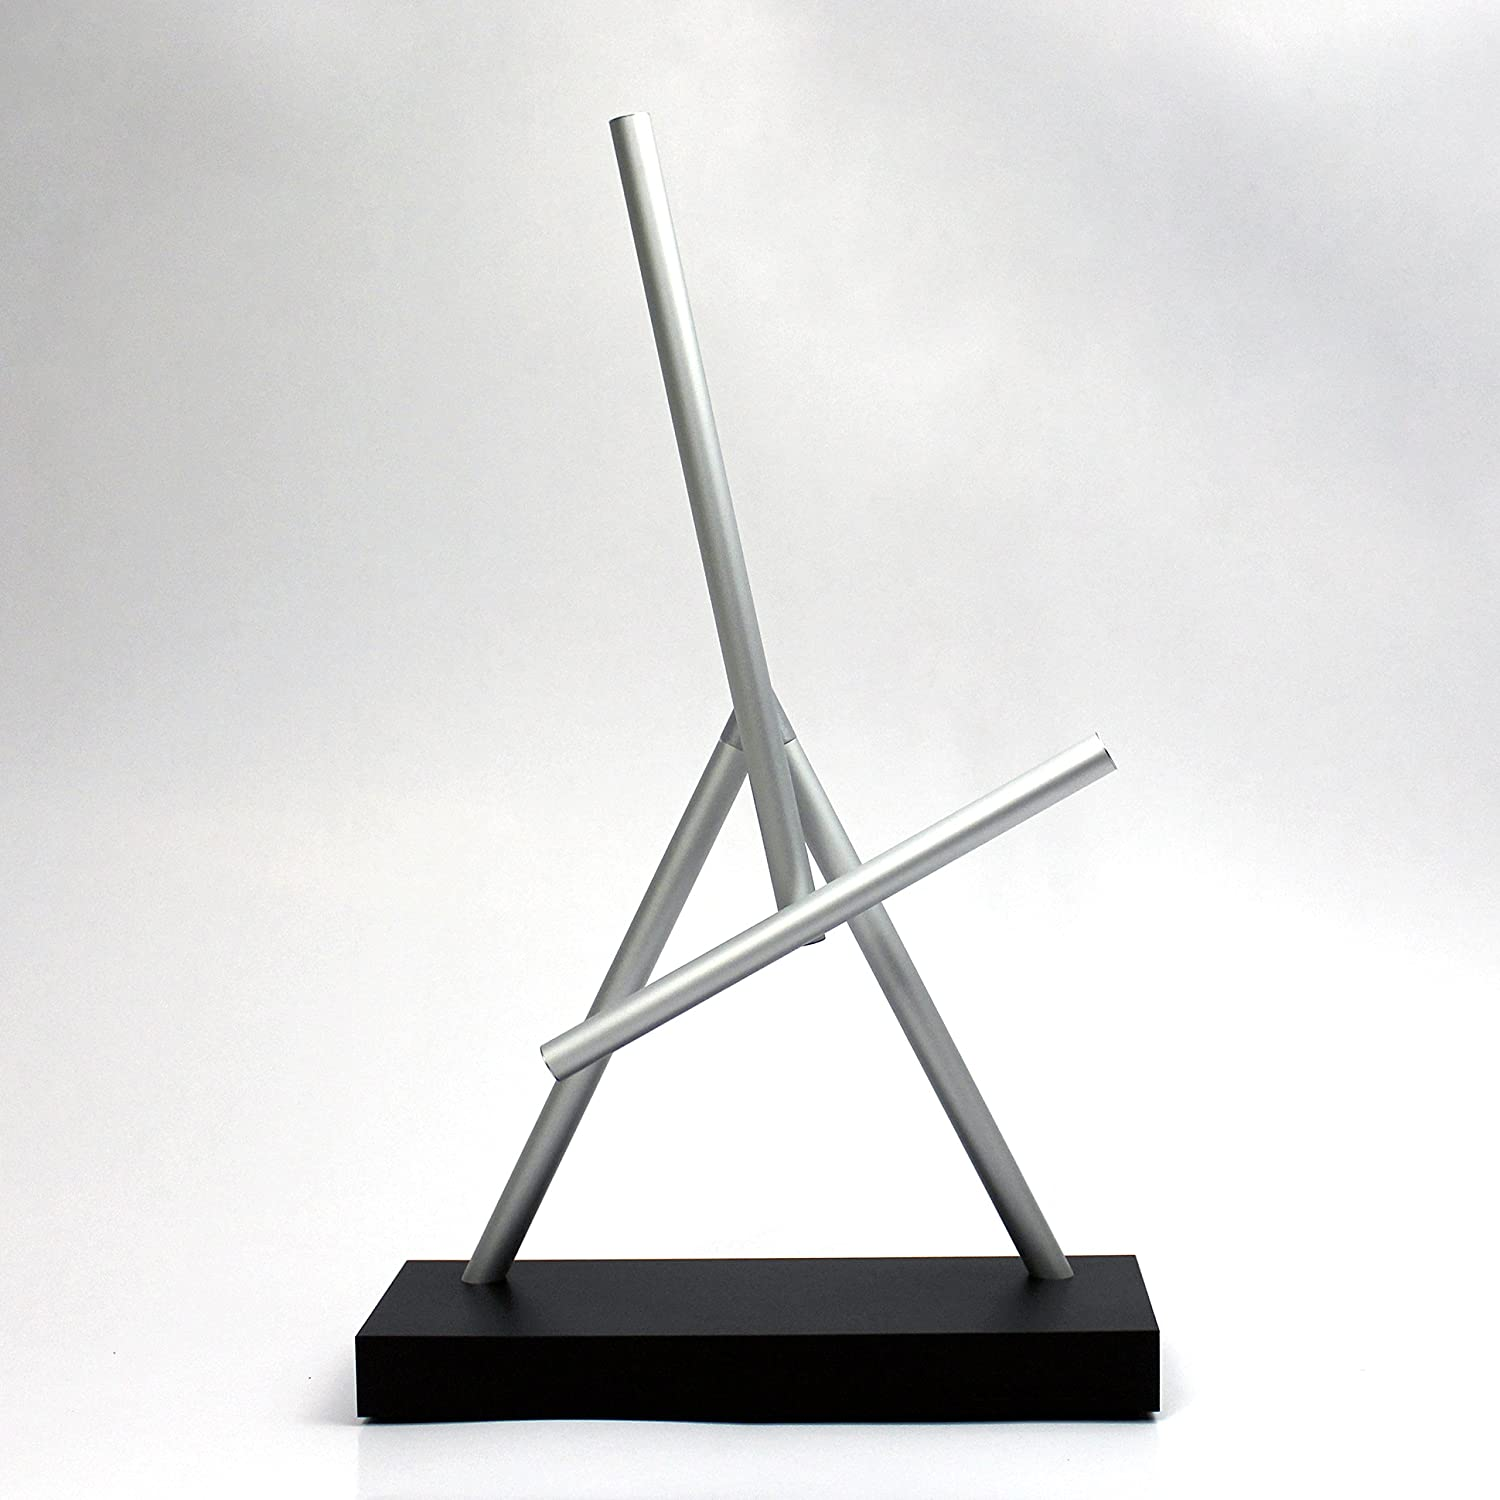 Fortune Products Inc. The Swinging Sticks Kinetic Energy Sculpture - Desktop Toy Version